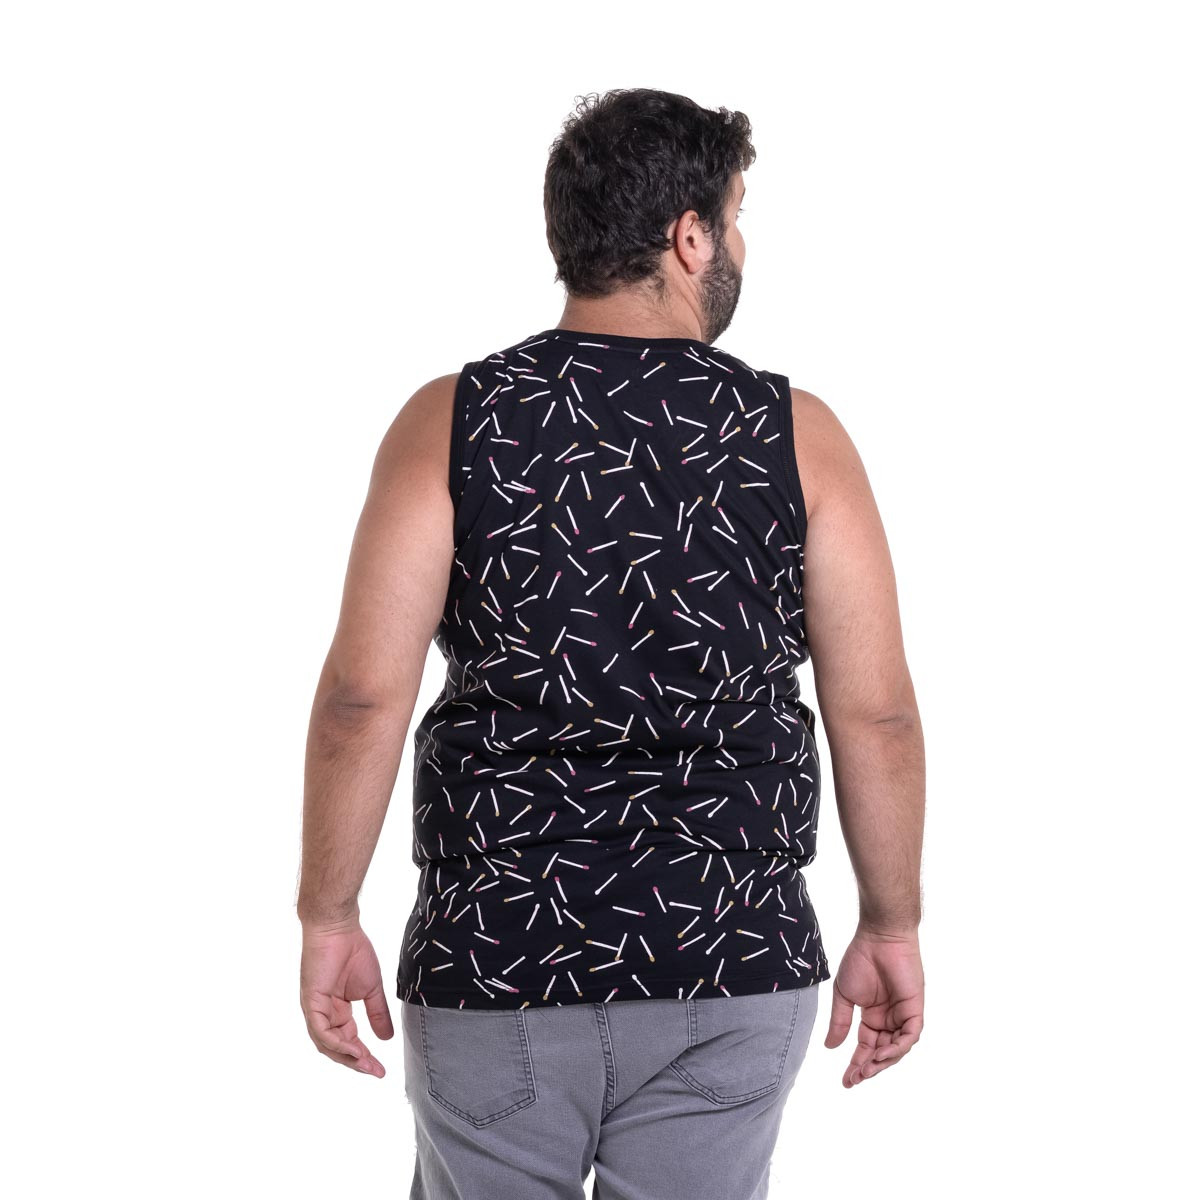 Regata Plus Size Masculina Palitos